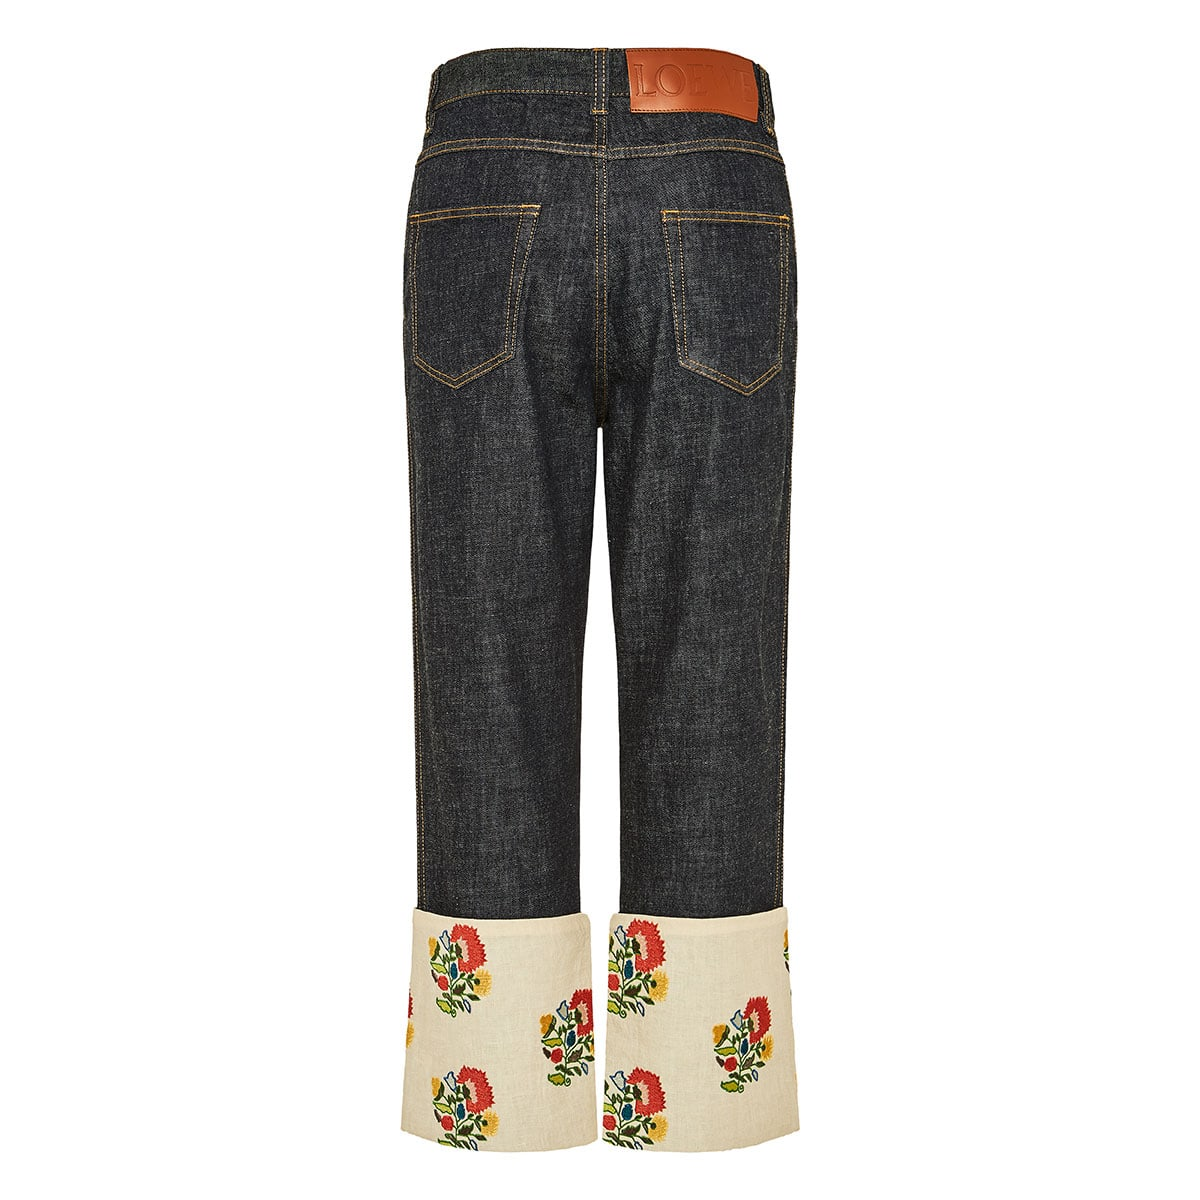 Cropped jeans with floral-embroidered hems